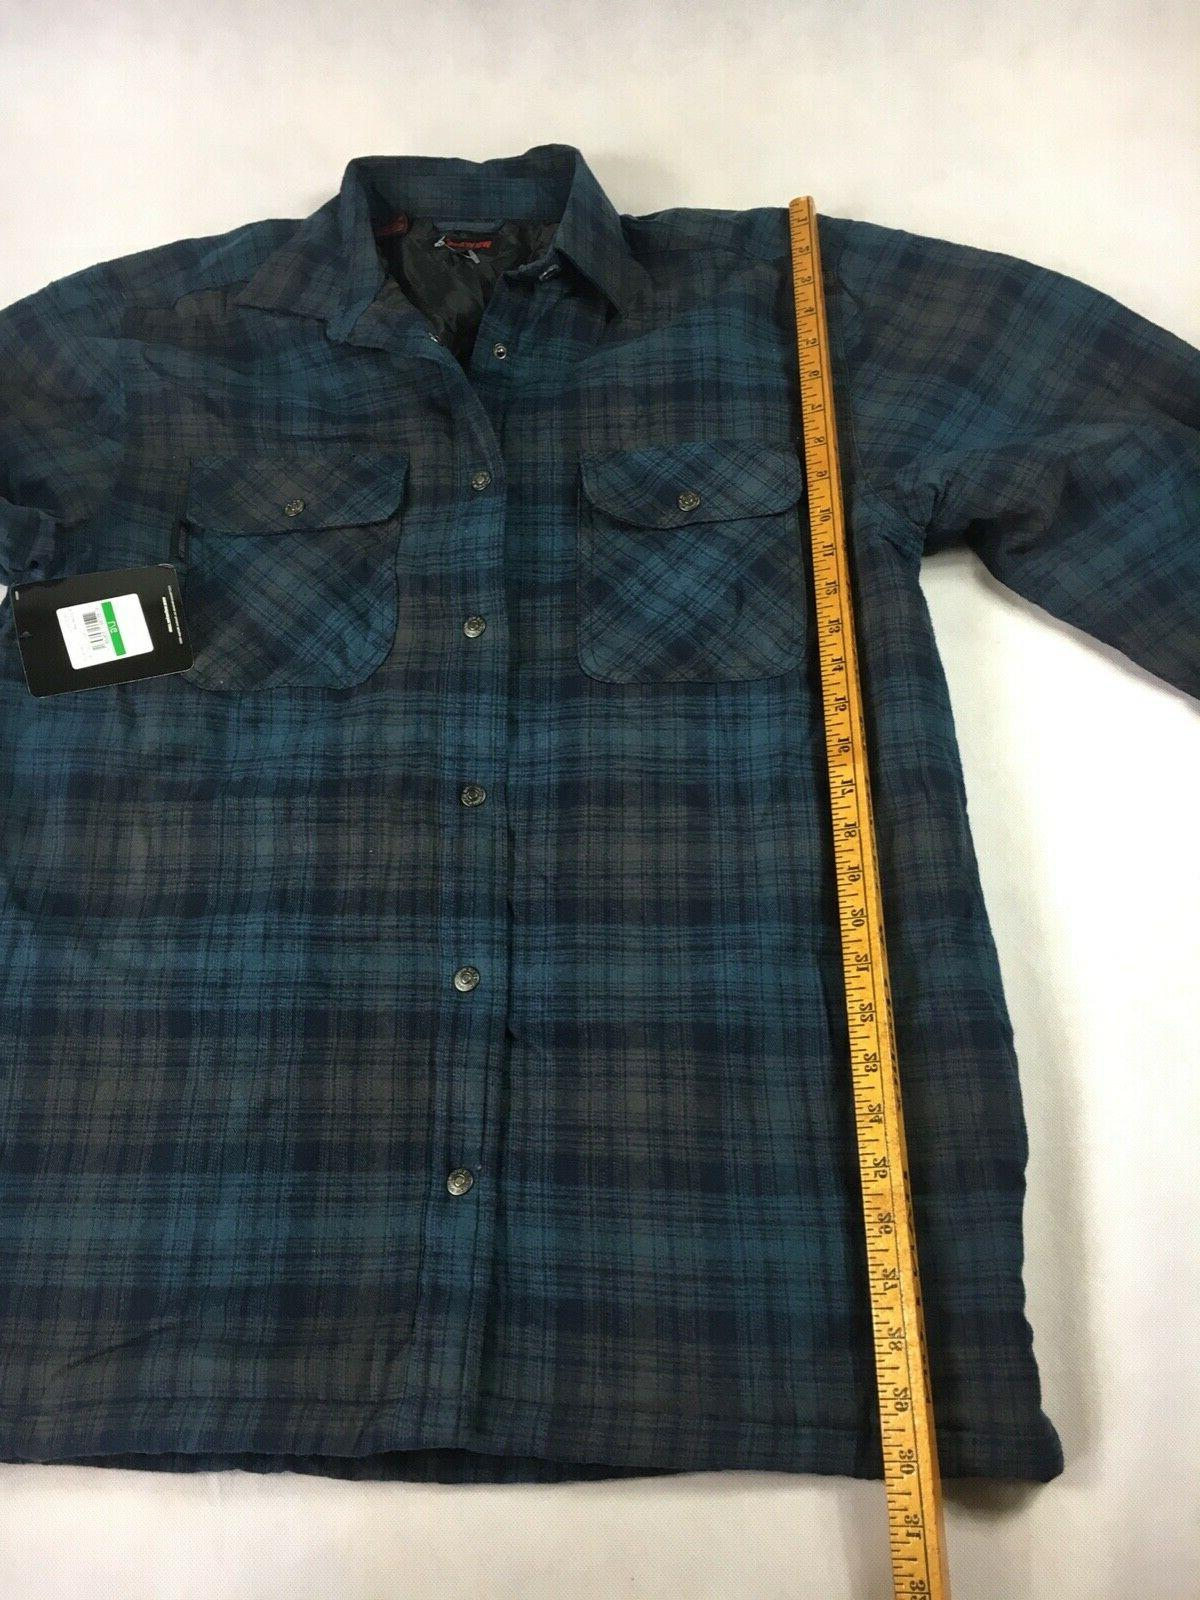 NWT Forester Blue Plaid Shirt - Large